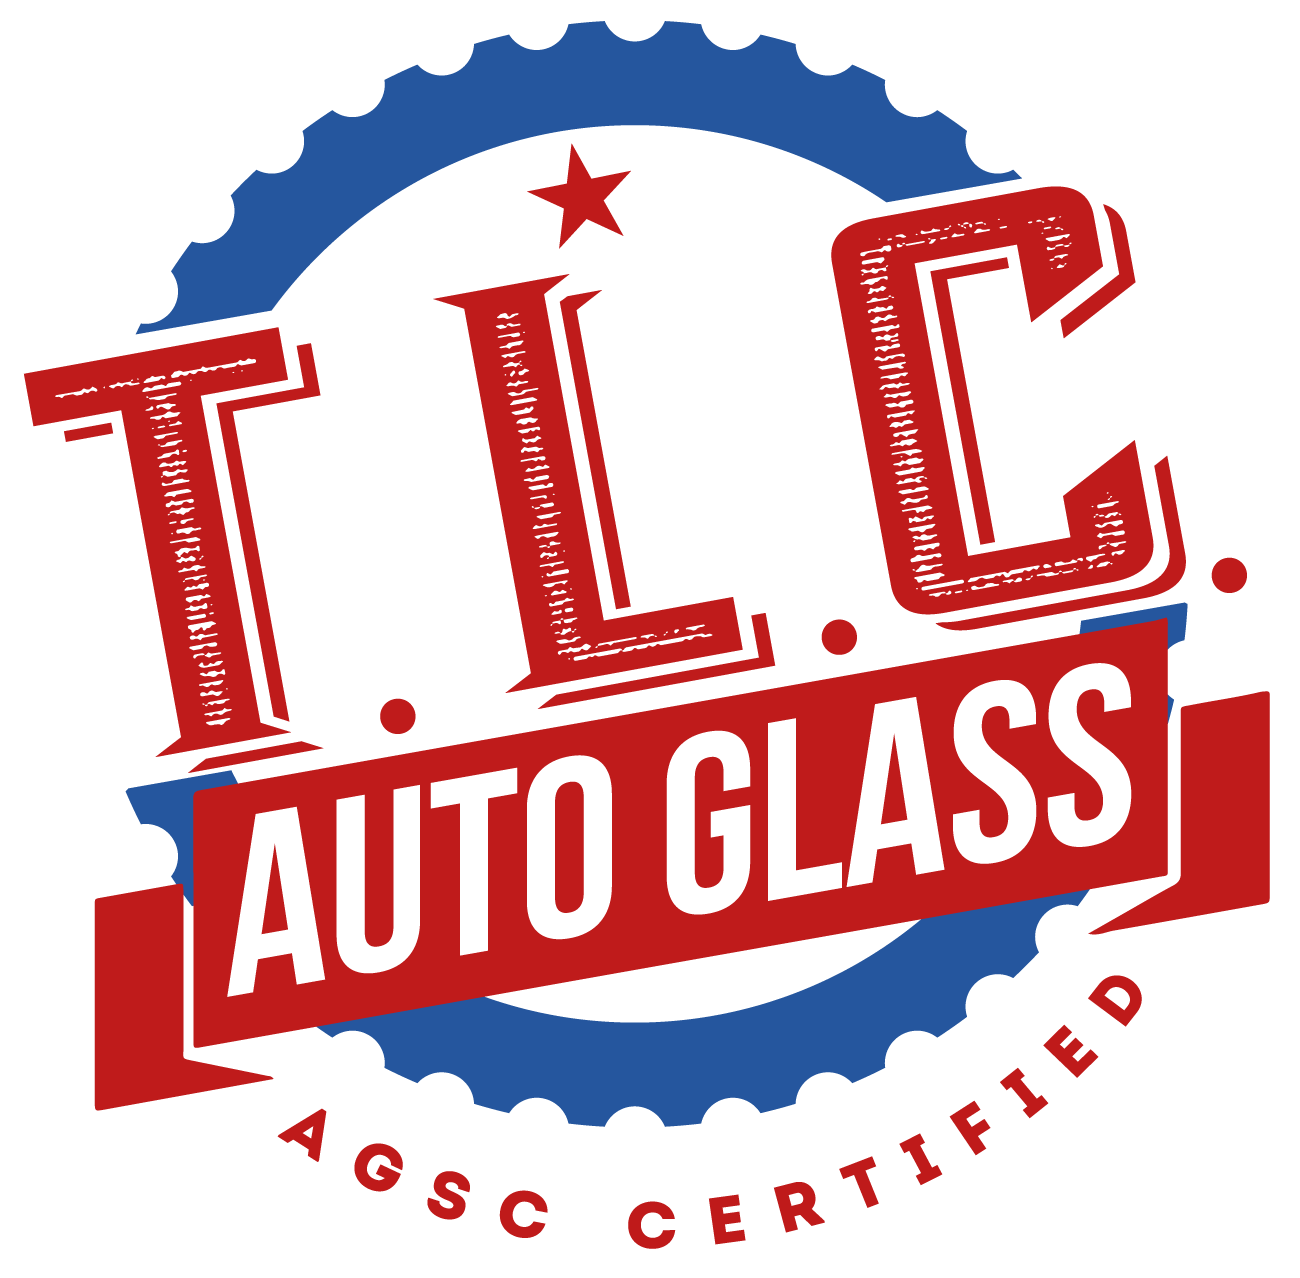 Autoglass Repair Austin TX